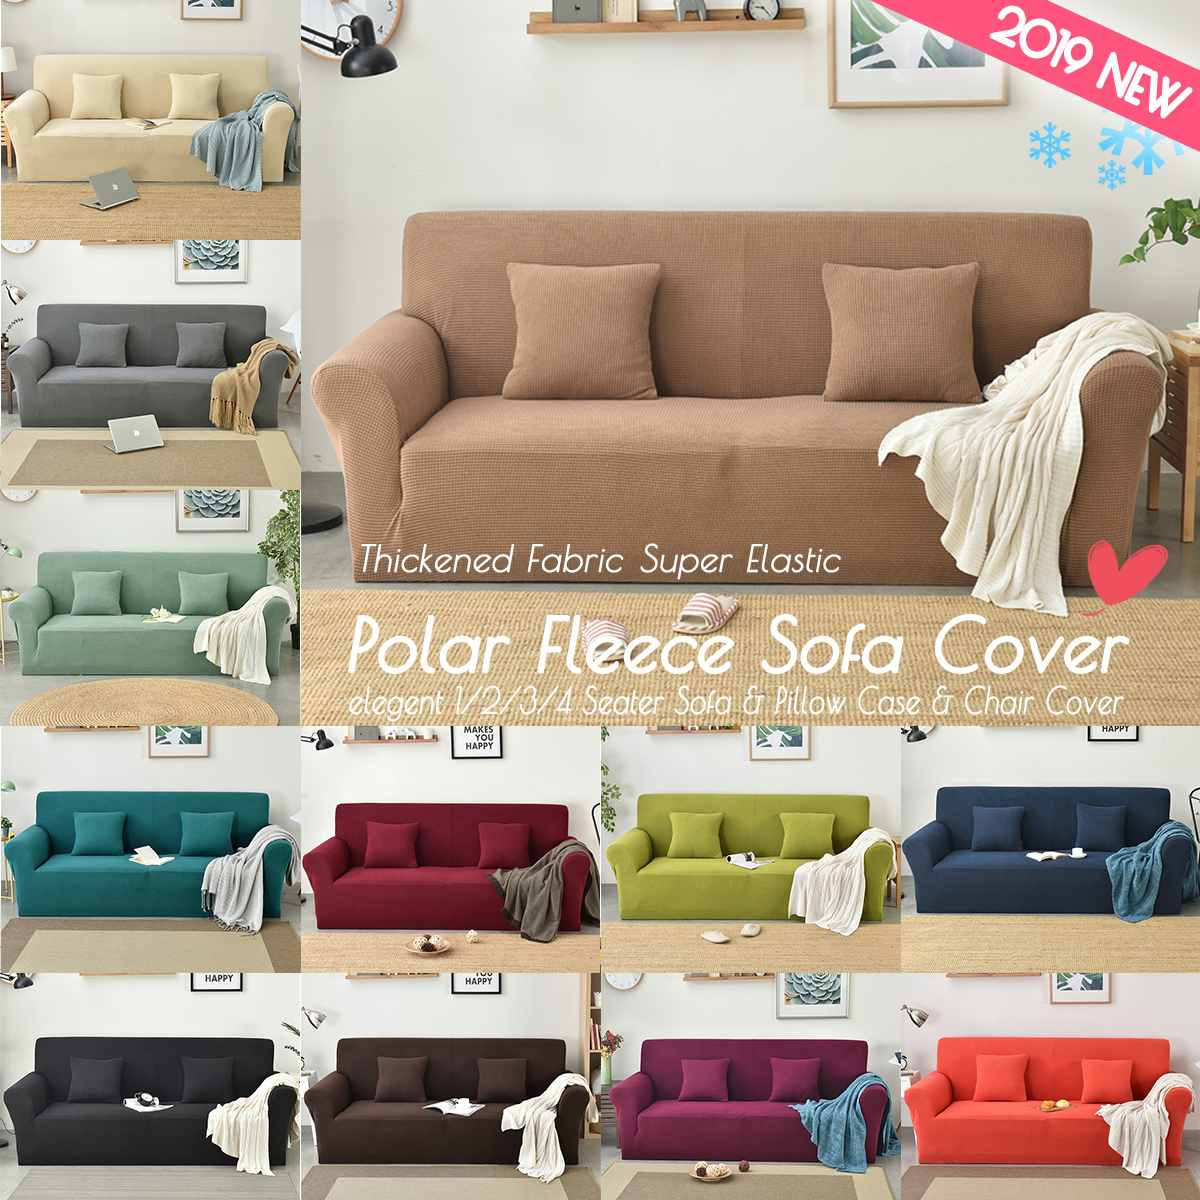 Polar Fleece Slipcover Sofa Solid Color Couch Cover Elastic Full Sofa Cover 1 2 3 4 Seater Stretch Pillow Case Chair Covers Dining Chair Covers For